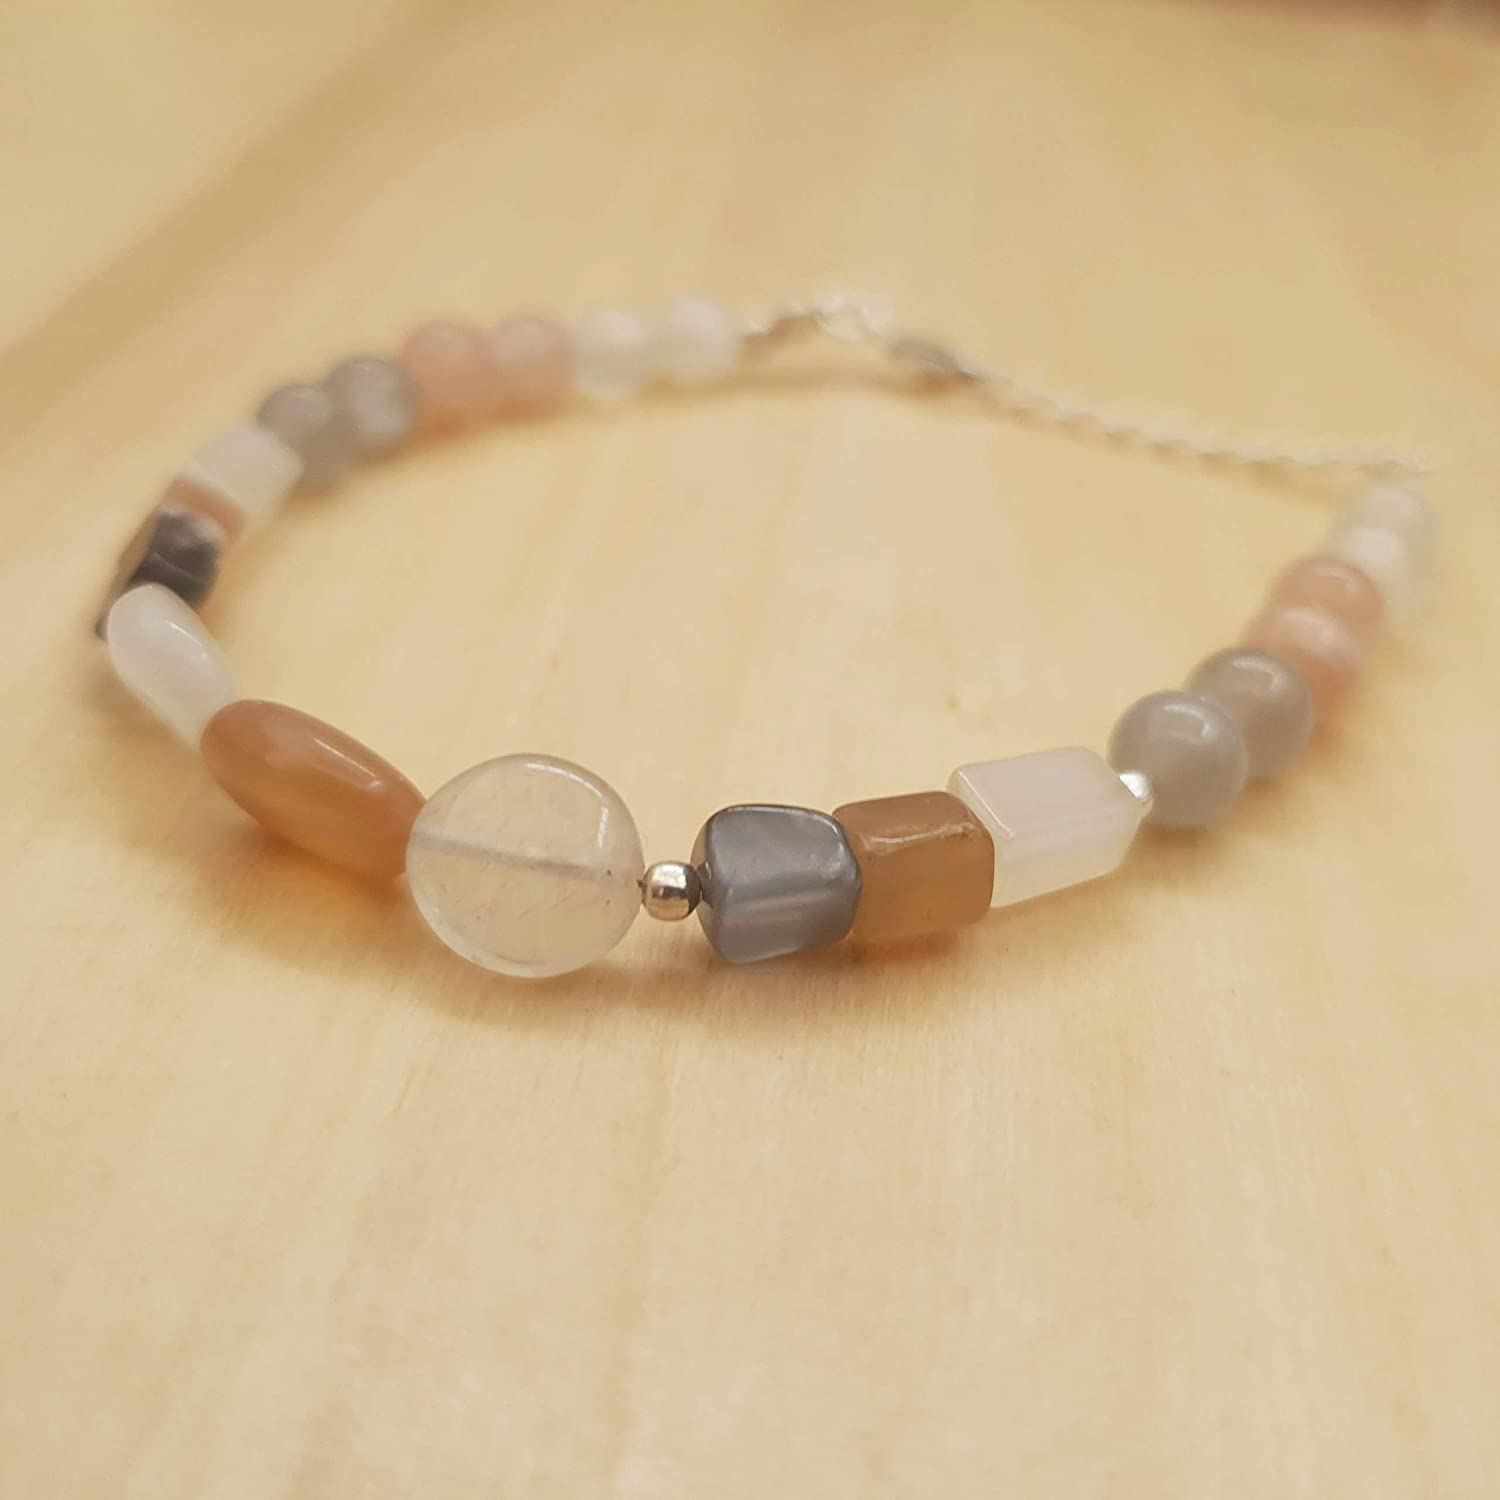 White Grey Peach Moonstone Bar Beads Bracelet Sterling Silver June Birthday Jewelry Gifts for women